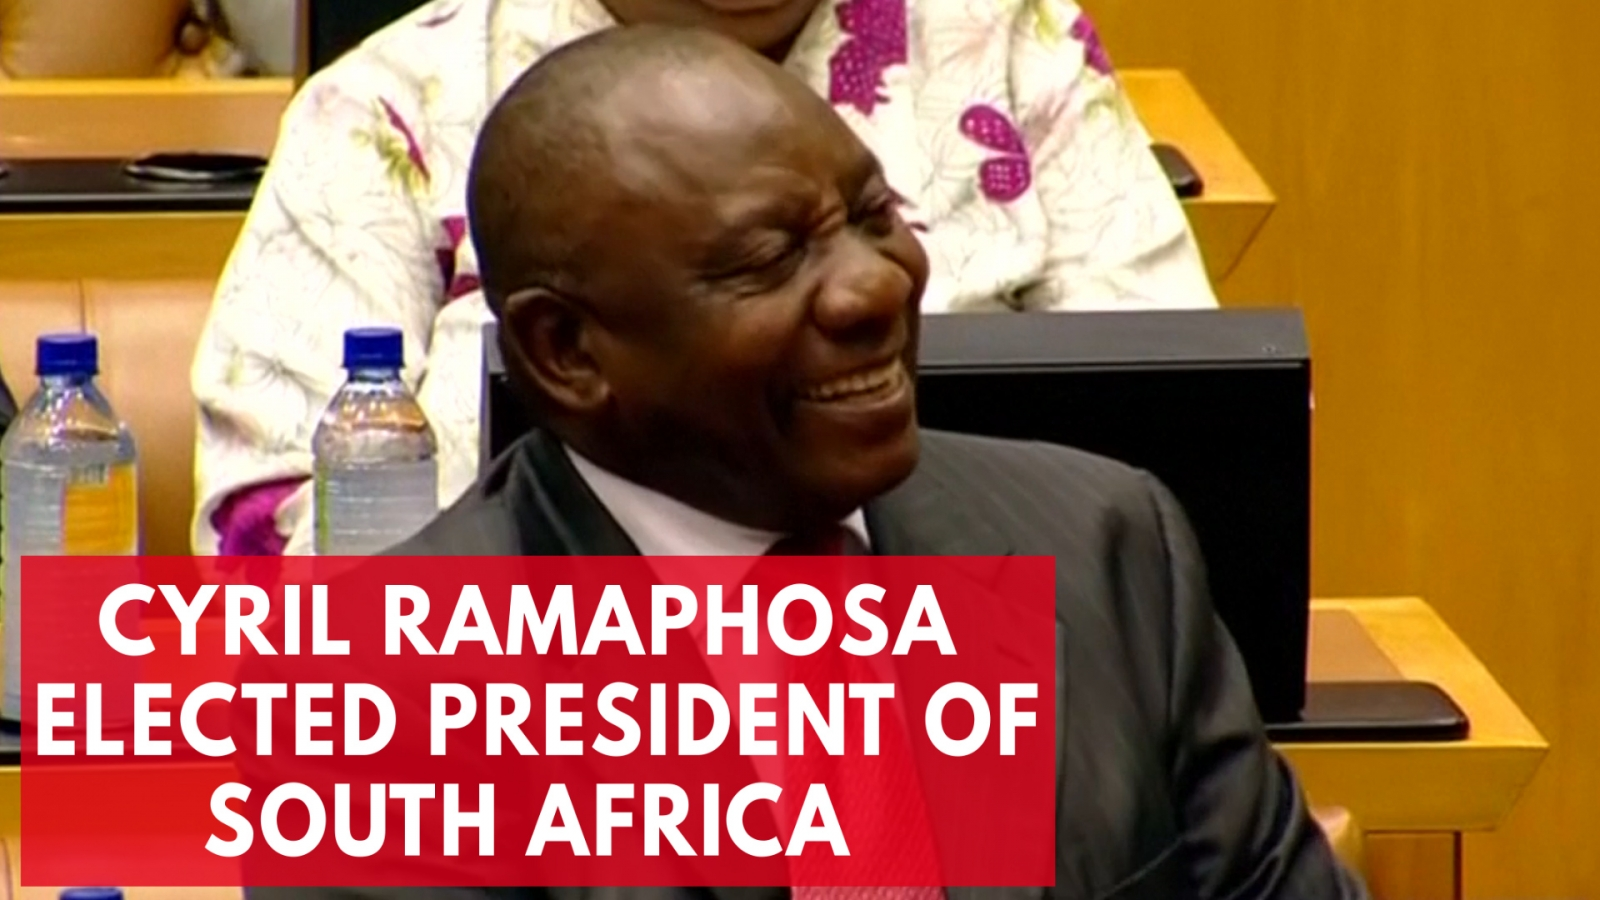 Who is Cyril Ramaphosa? South Africa's newly elected president